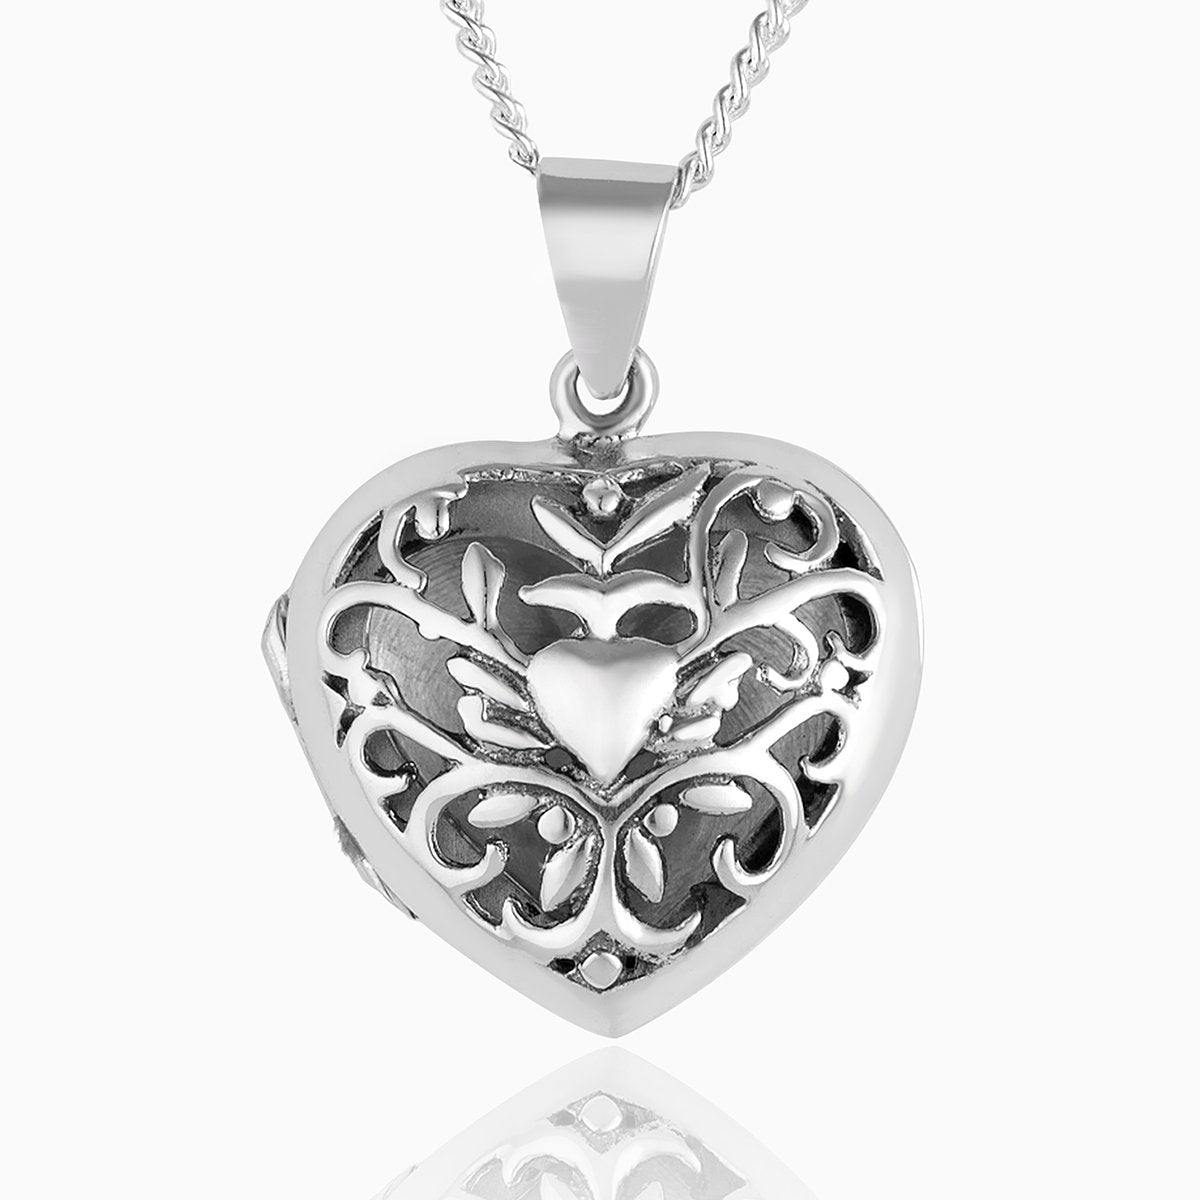 Product title: Scrolling Heart Locket, product type: Locket